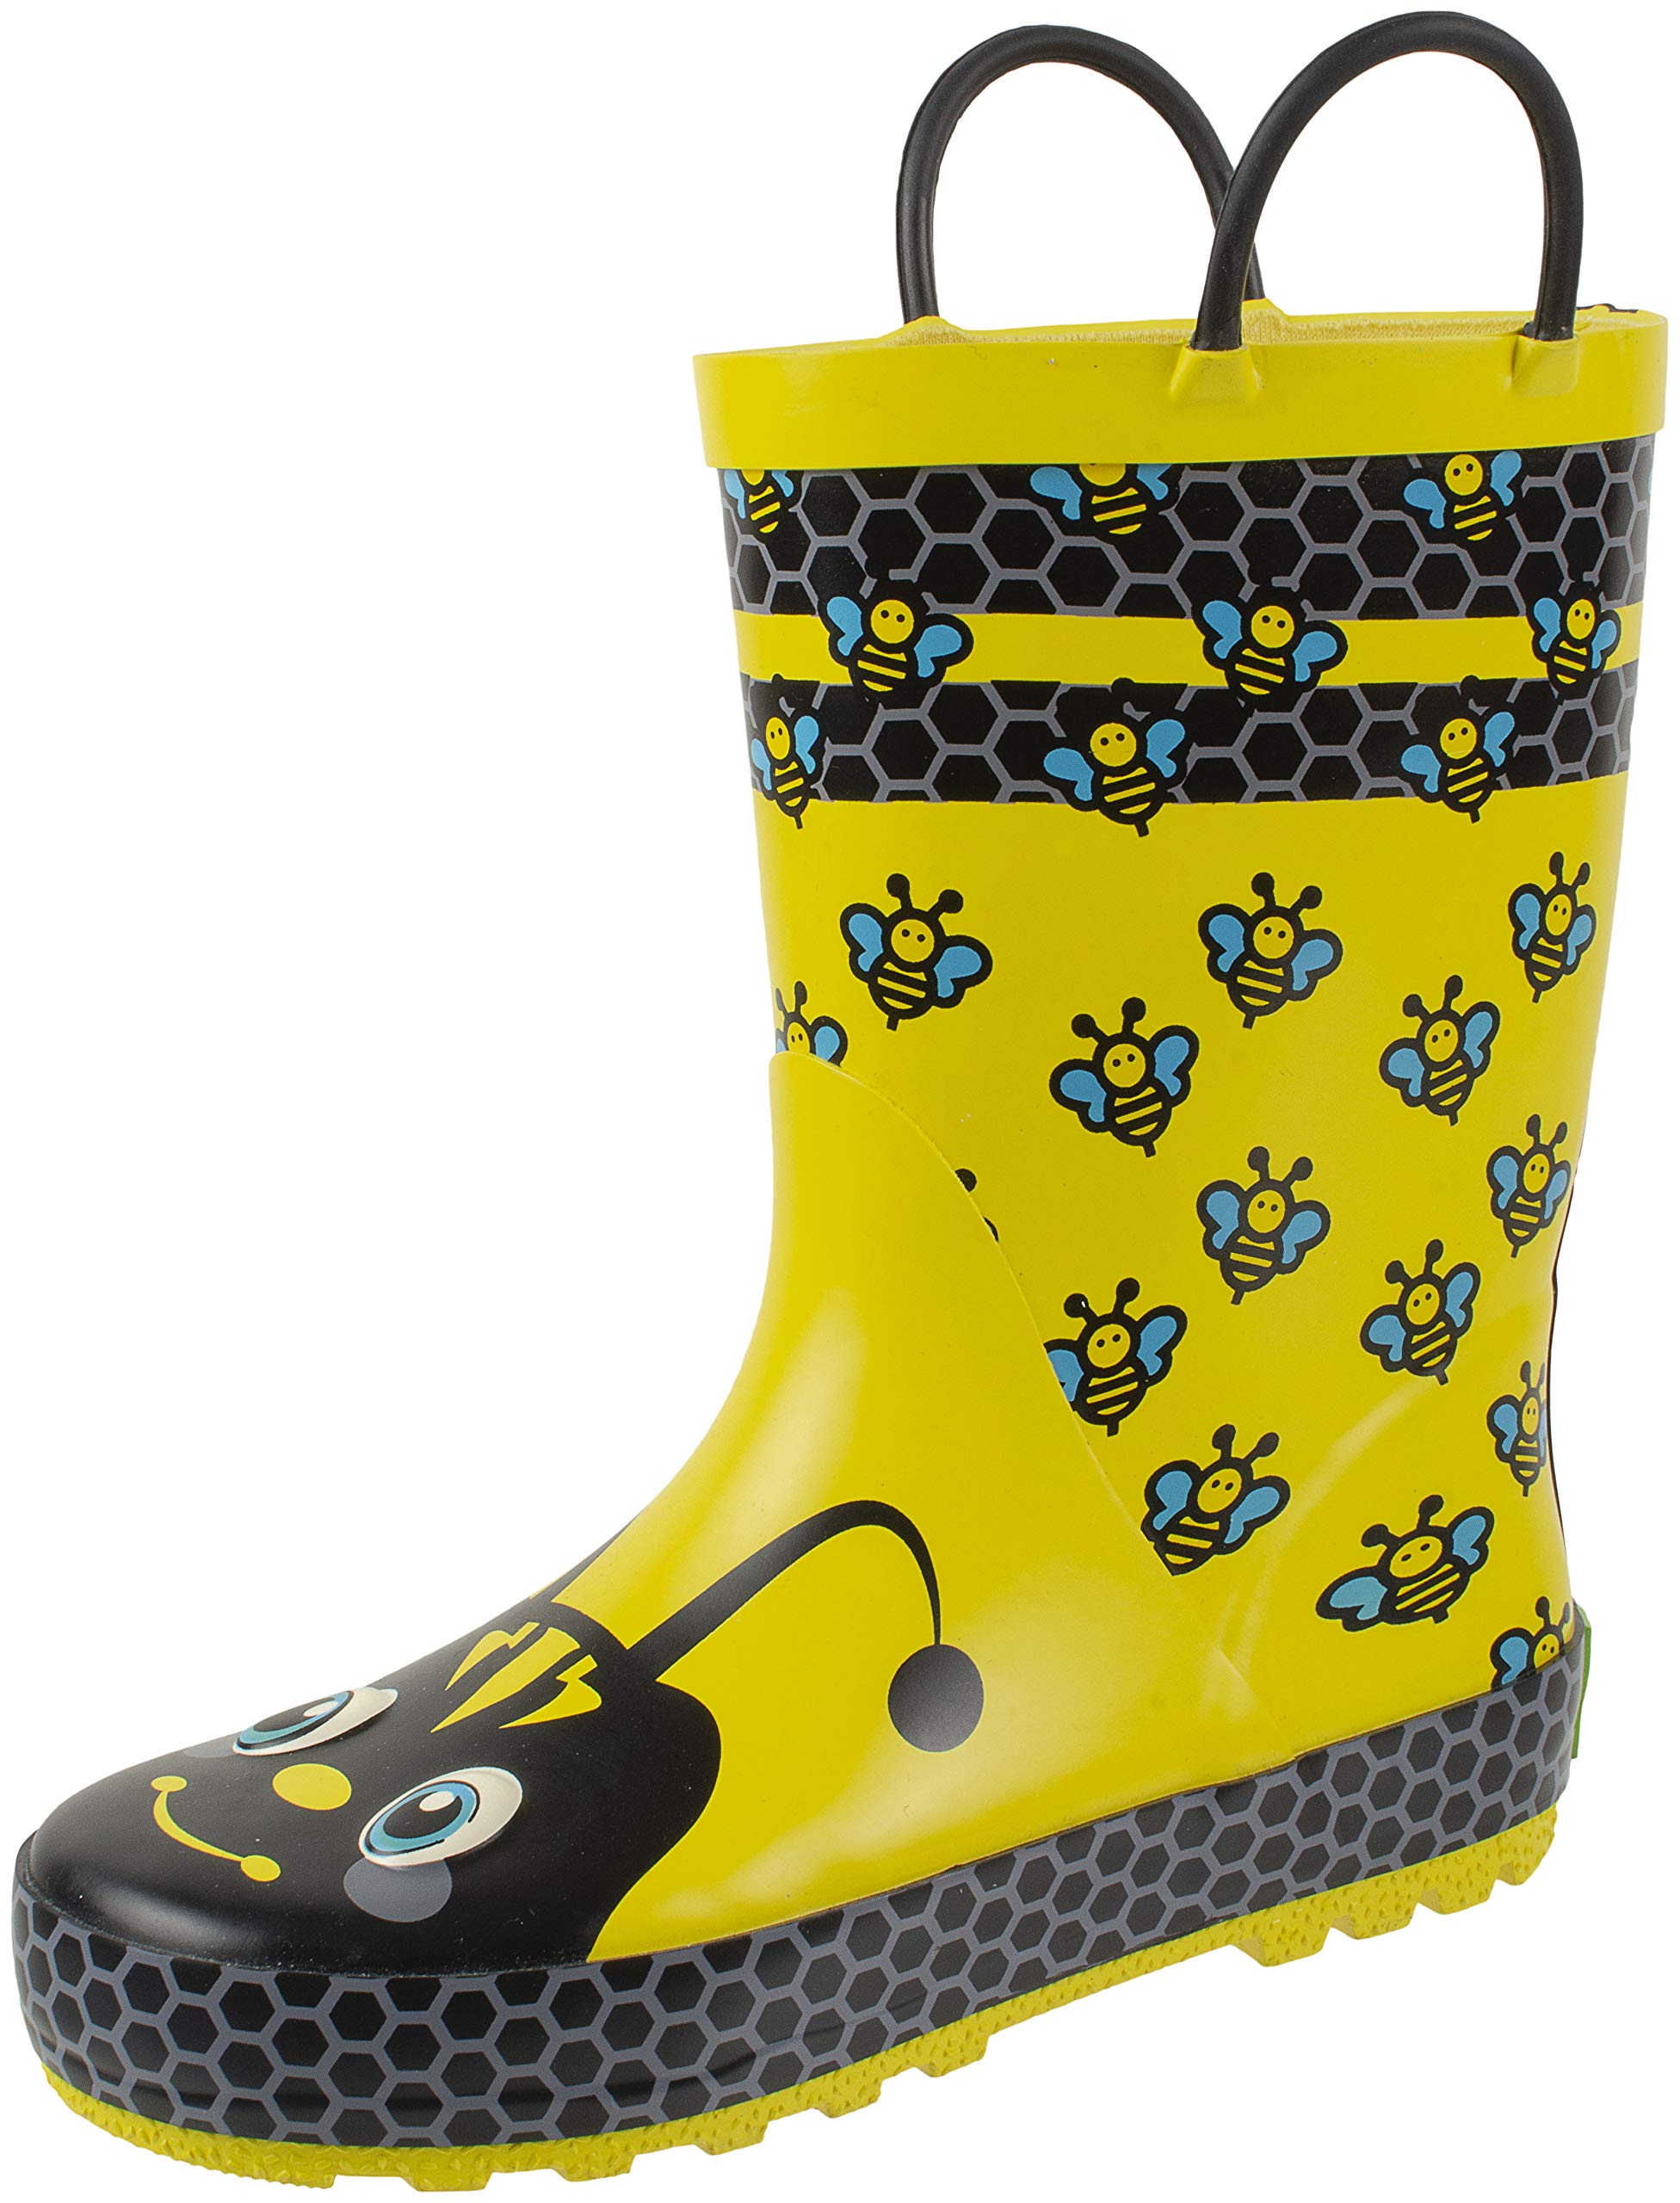 Rainbow Daze Kids Rain Boots with Easy on Handles, Fun Prints,Waterproof,Unisex Boots,Little Kid 9/10, Yellow Bee